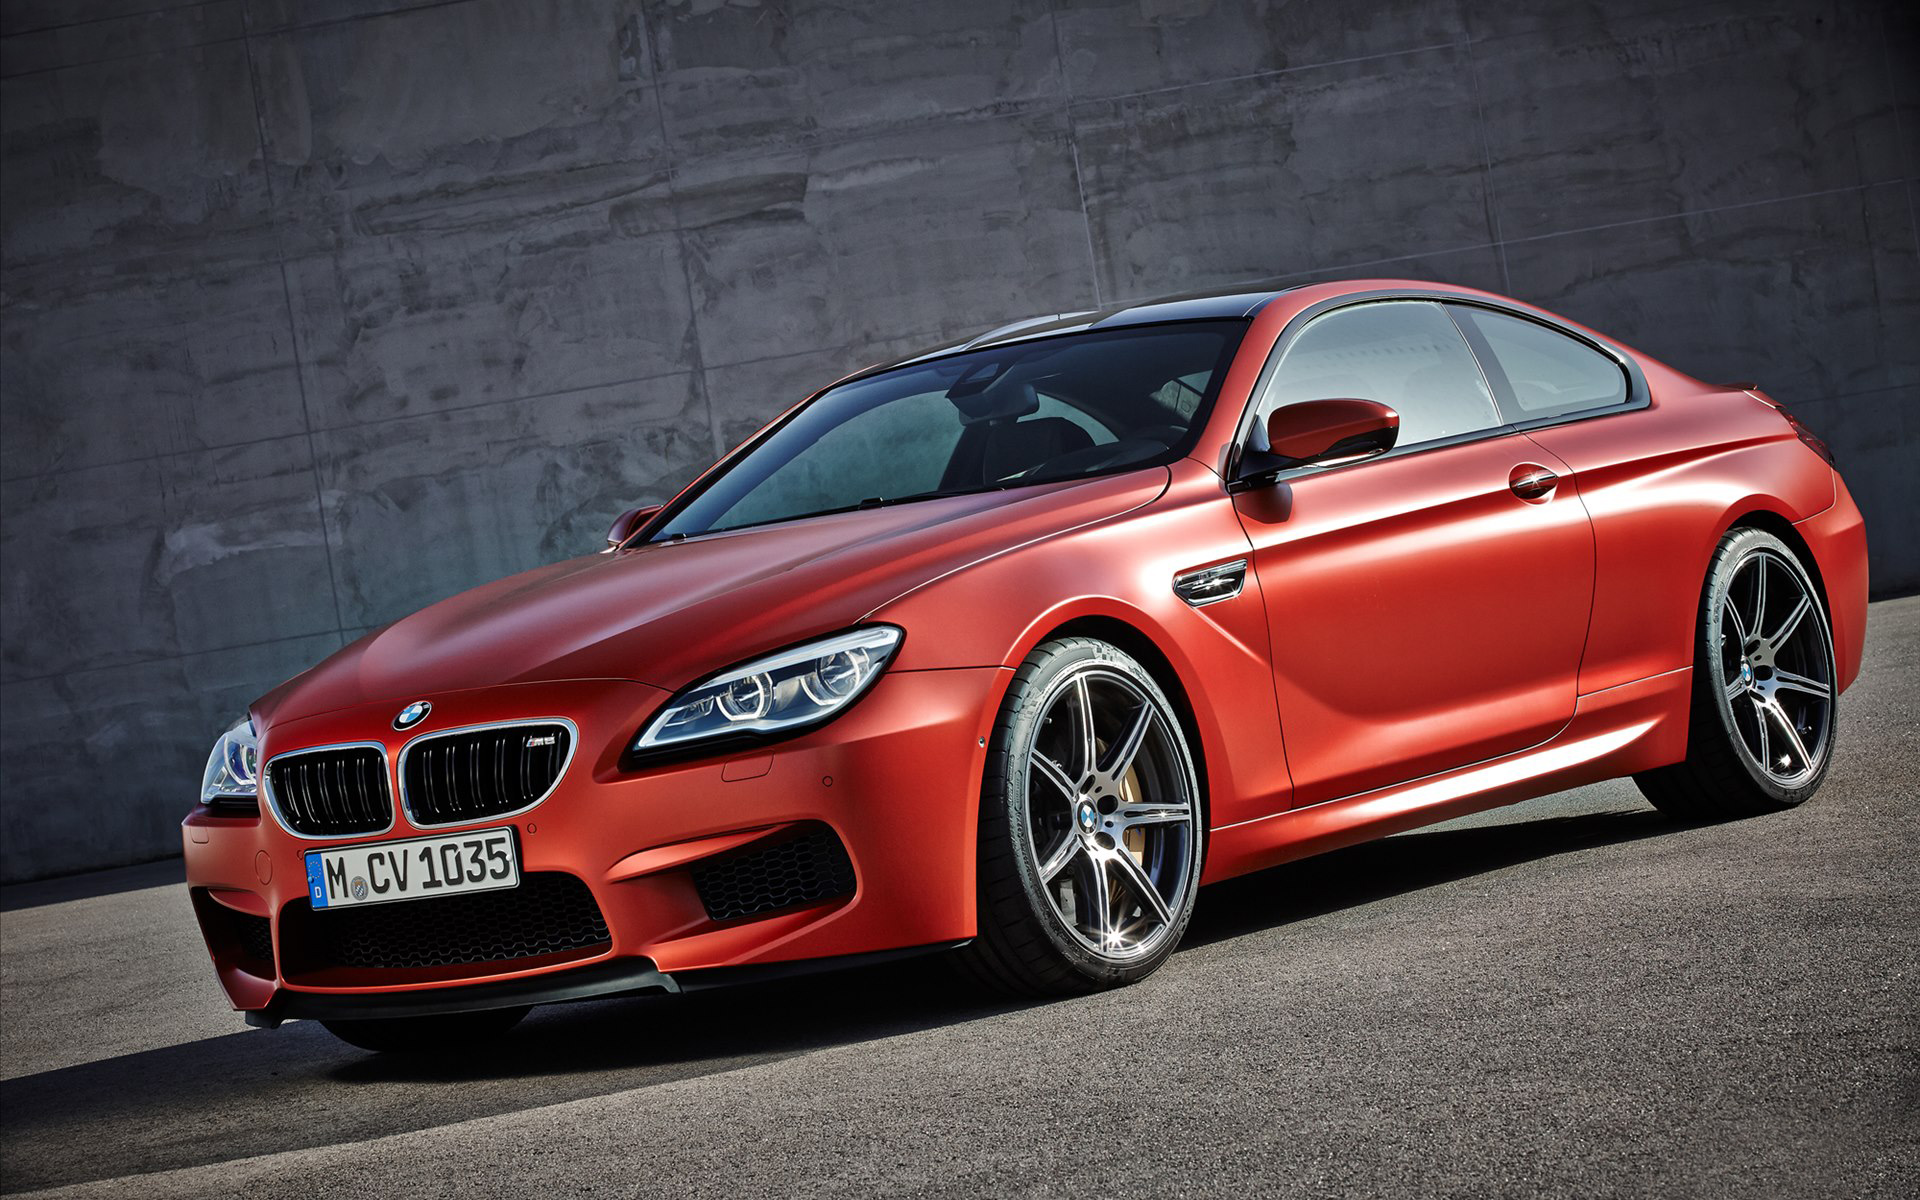 Bmw M6 Wallpaper Hd for Pinterest